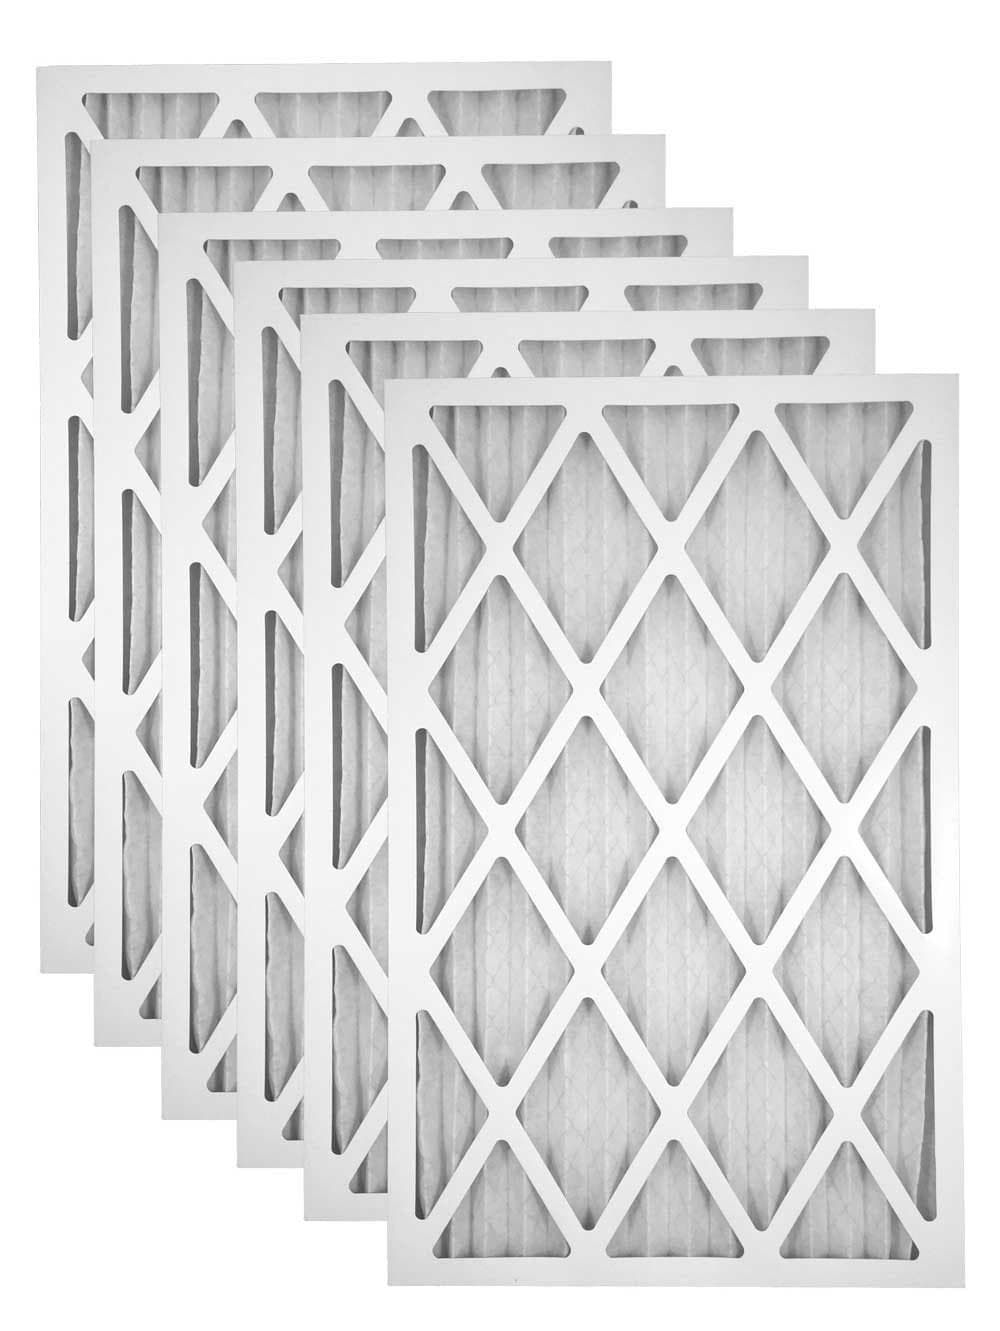 12x30x1 Merv 13 AC Furnace Filter - Case of 6